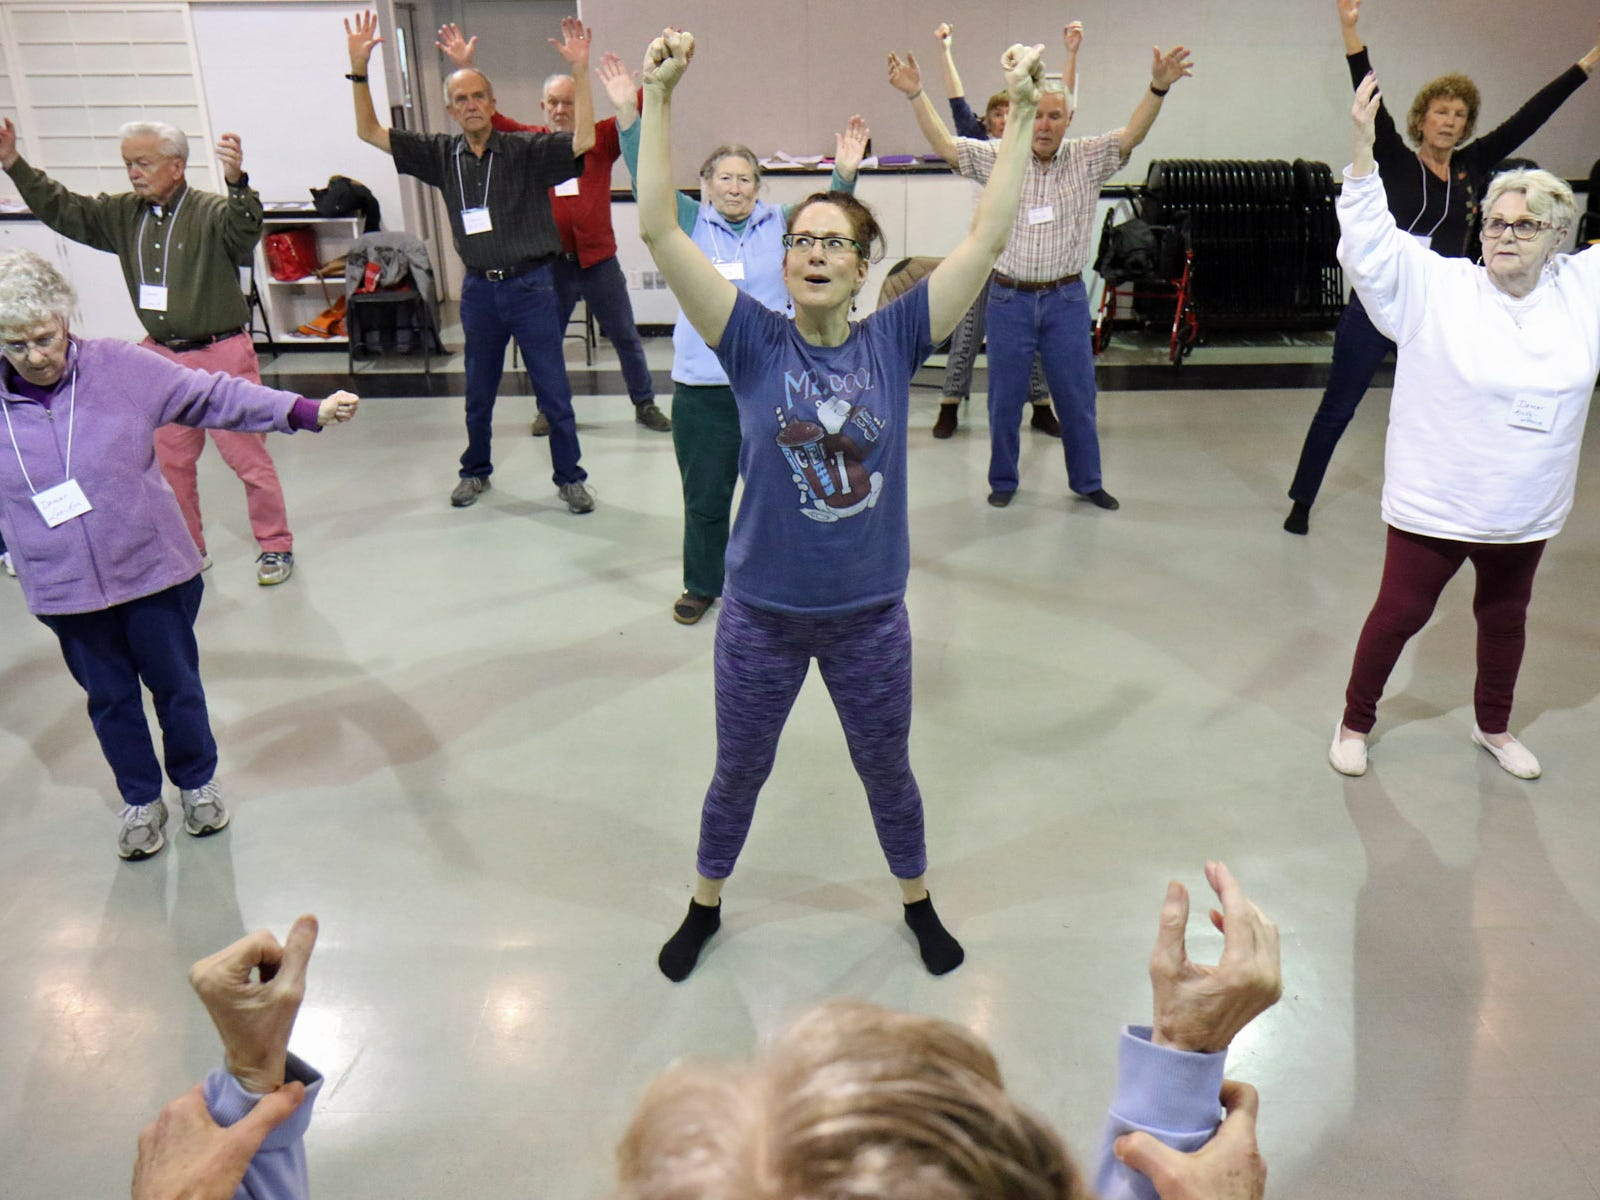 Dance for Parkinson's instructor Deborah Birrane, center, leads the class in floor exercises.